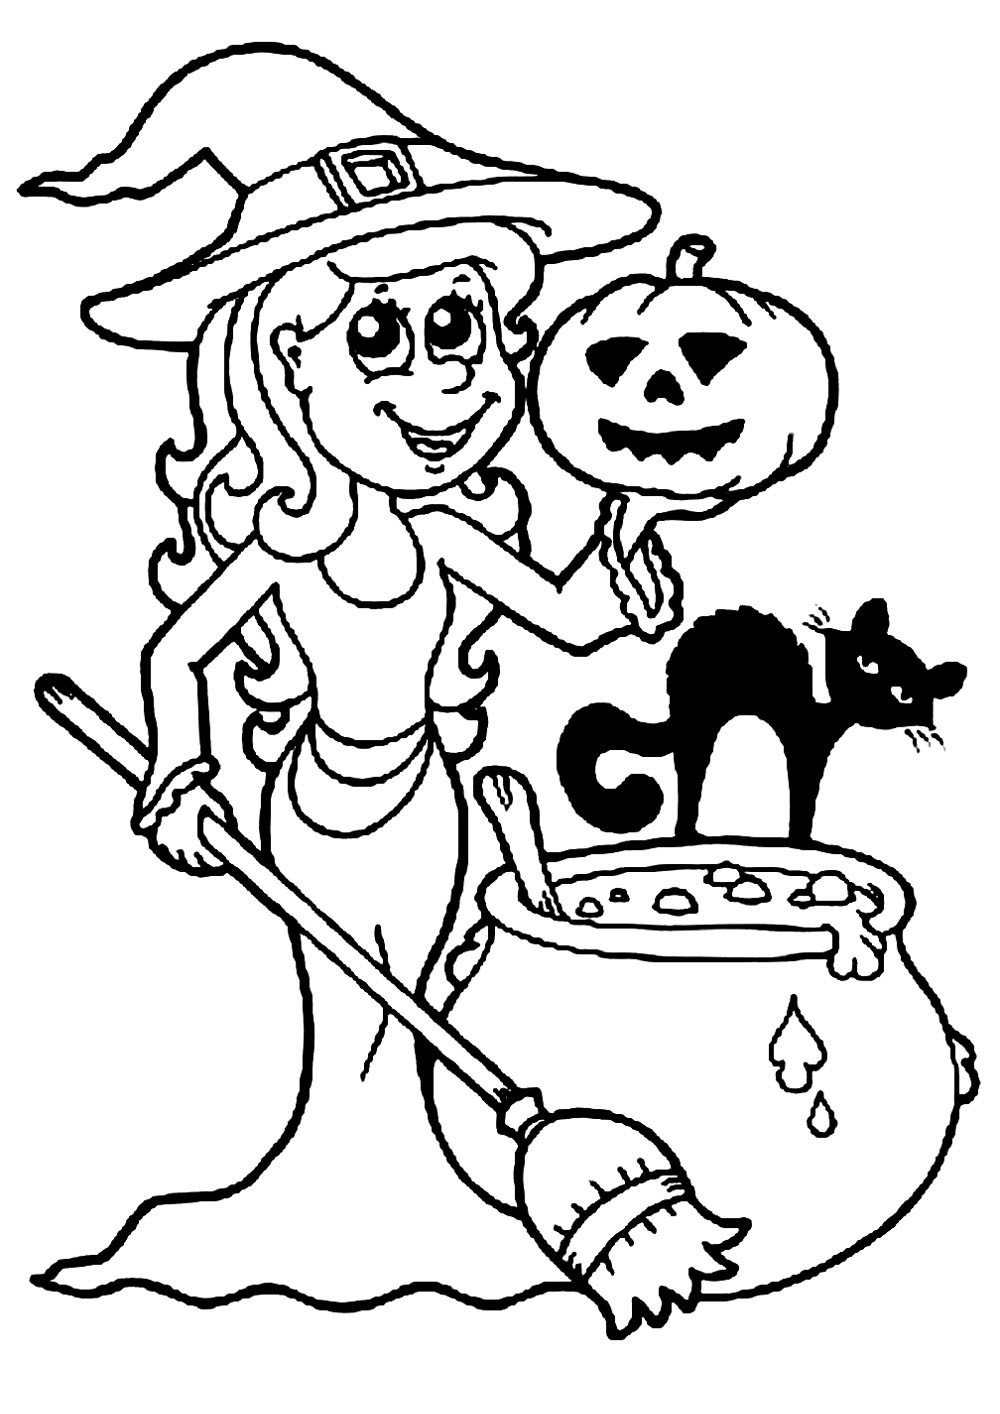 Halloween Coloring Sheets For Kids  Halloween free to color for kids Halloween Kids Coloring